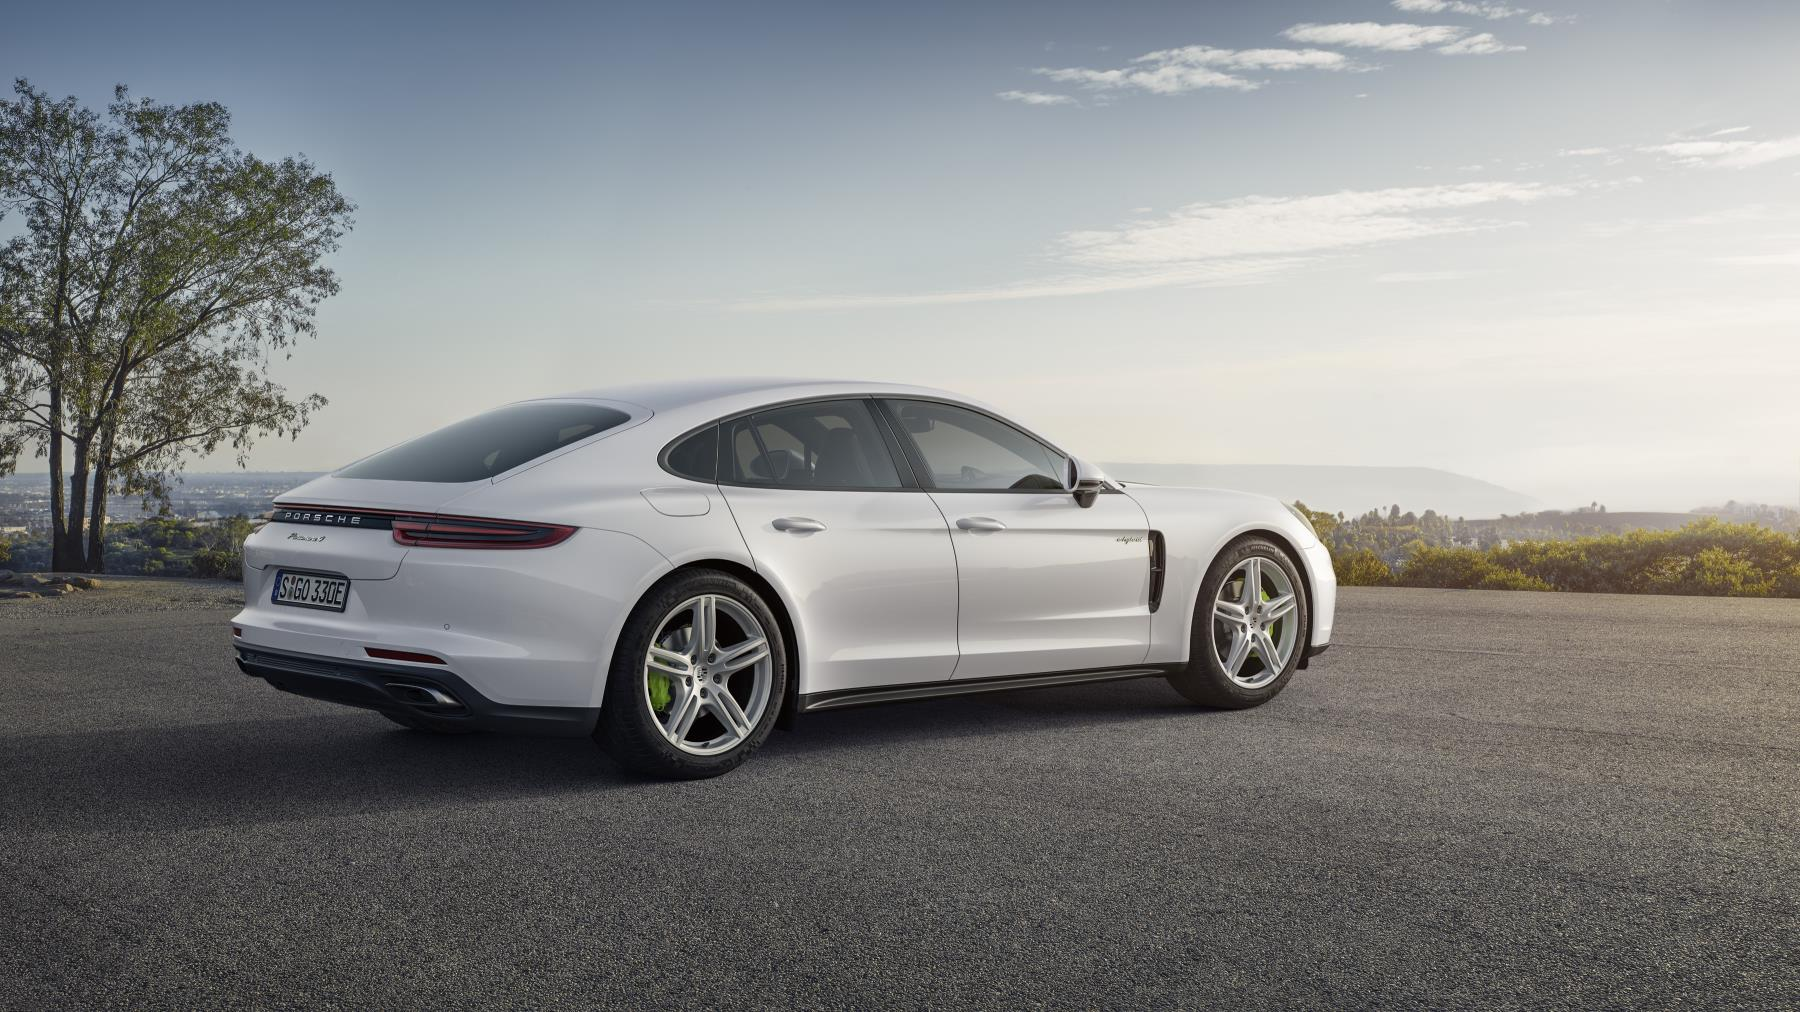 2018 porsche panamera 4 e hybrid unveiled uses 2 9l twin turbo autoevolution. Black Bedroom Furniture Sets. Home Design Ideas